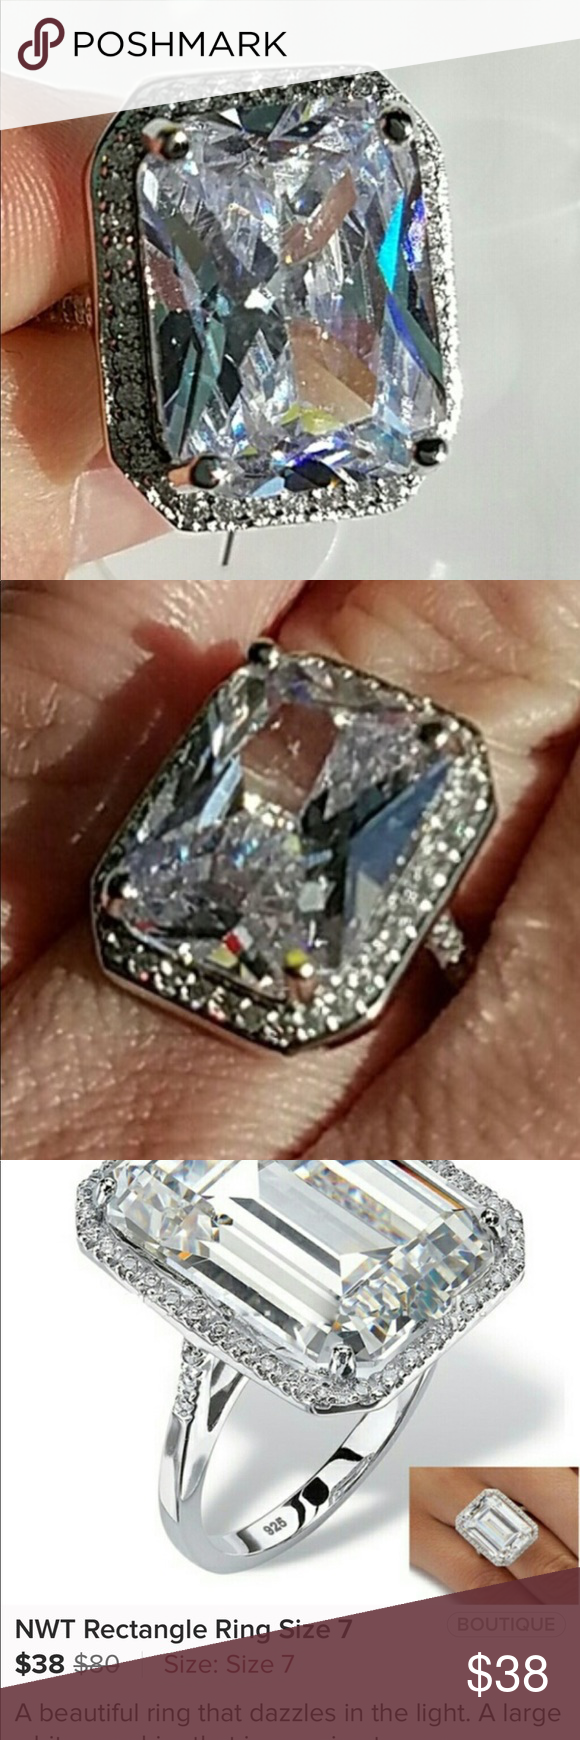 NWT rectangle silver ring Beautiful fun loving ring , stamped 925 sterling silver size 7 .. large white sapphire center stone with CZ small diamonds , simply beautiful Jewelry Rings